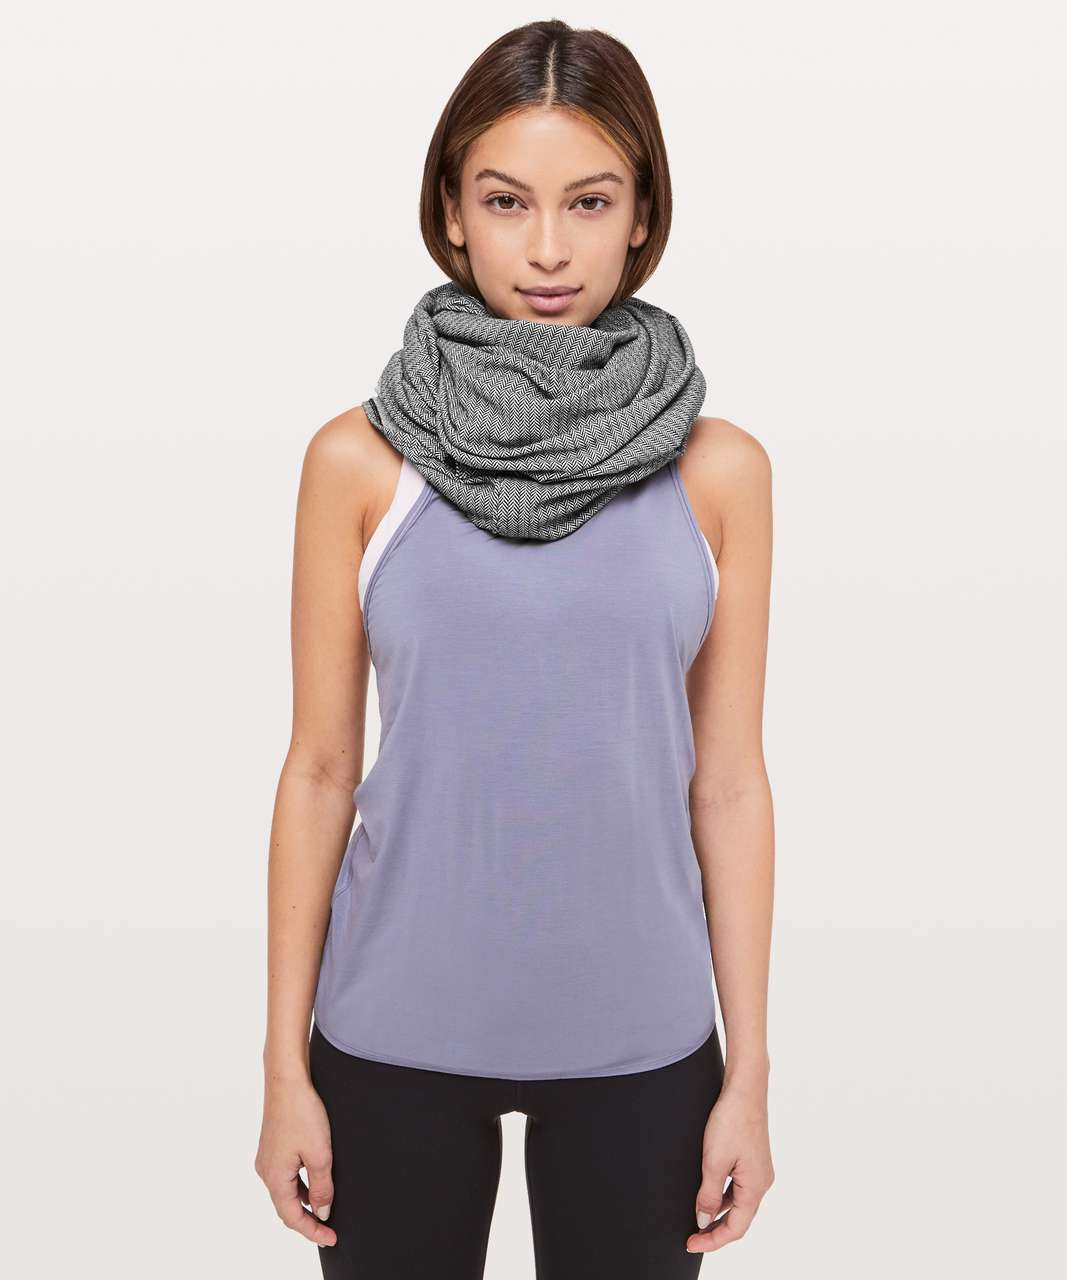 Lululemon Vinyasa Scarf *Rulu - Heathered Herringbone Black Heathered White